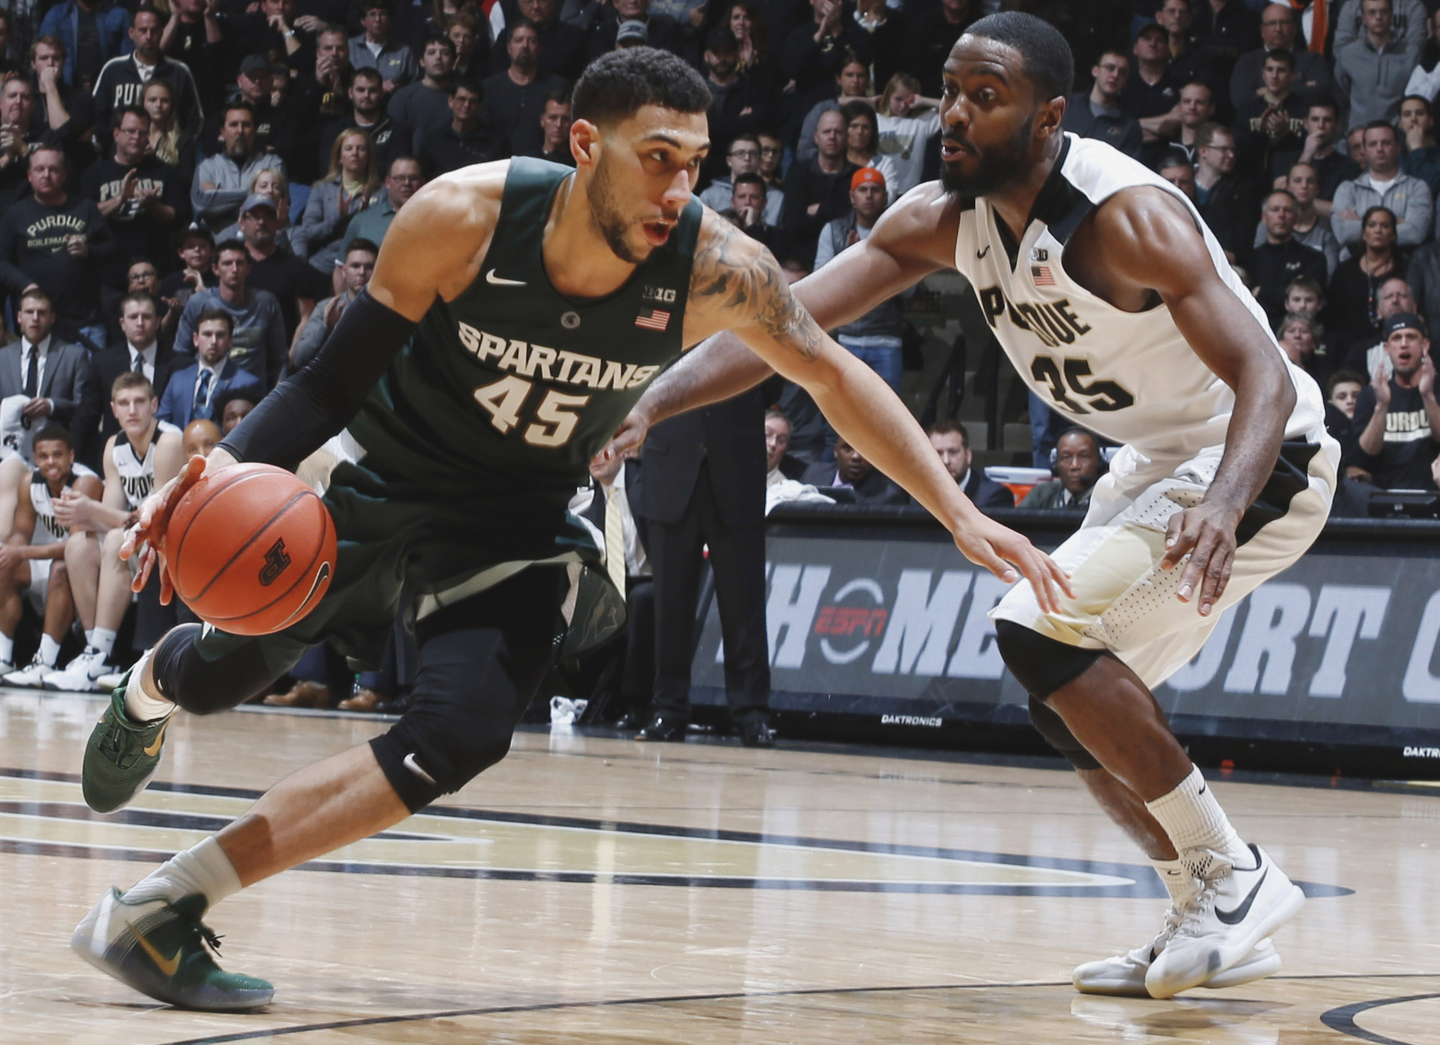 Michigan State Spartans guard Denzel Valentine (45) drives to the basket against Purdue Boilermakers guard Rapheal Davis (35) at Mackey Arena. Purdue defeats Michigan State 82-81 in overtime.